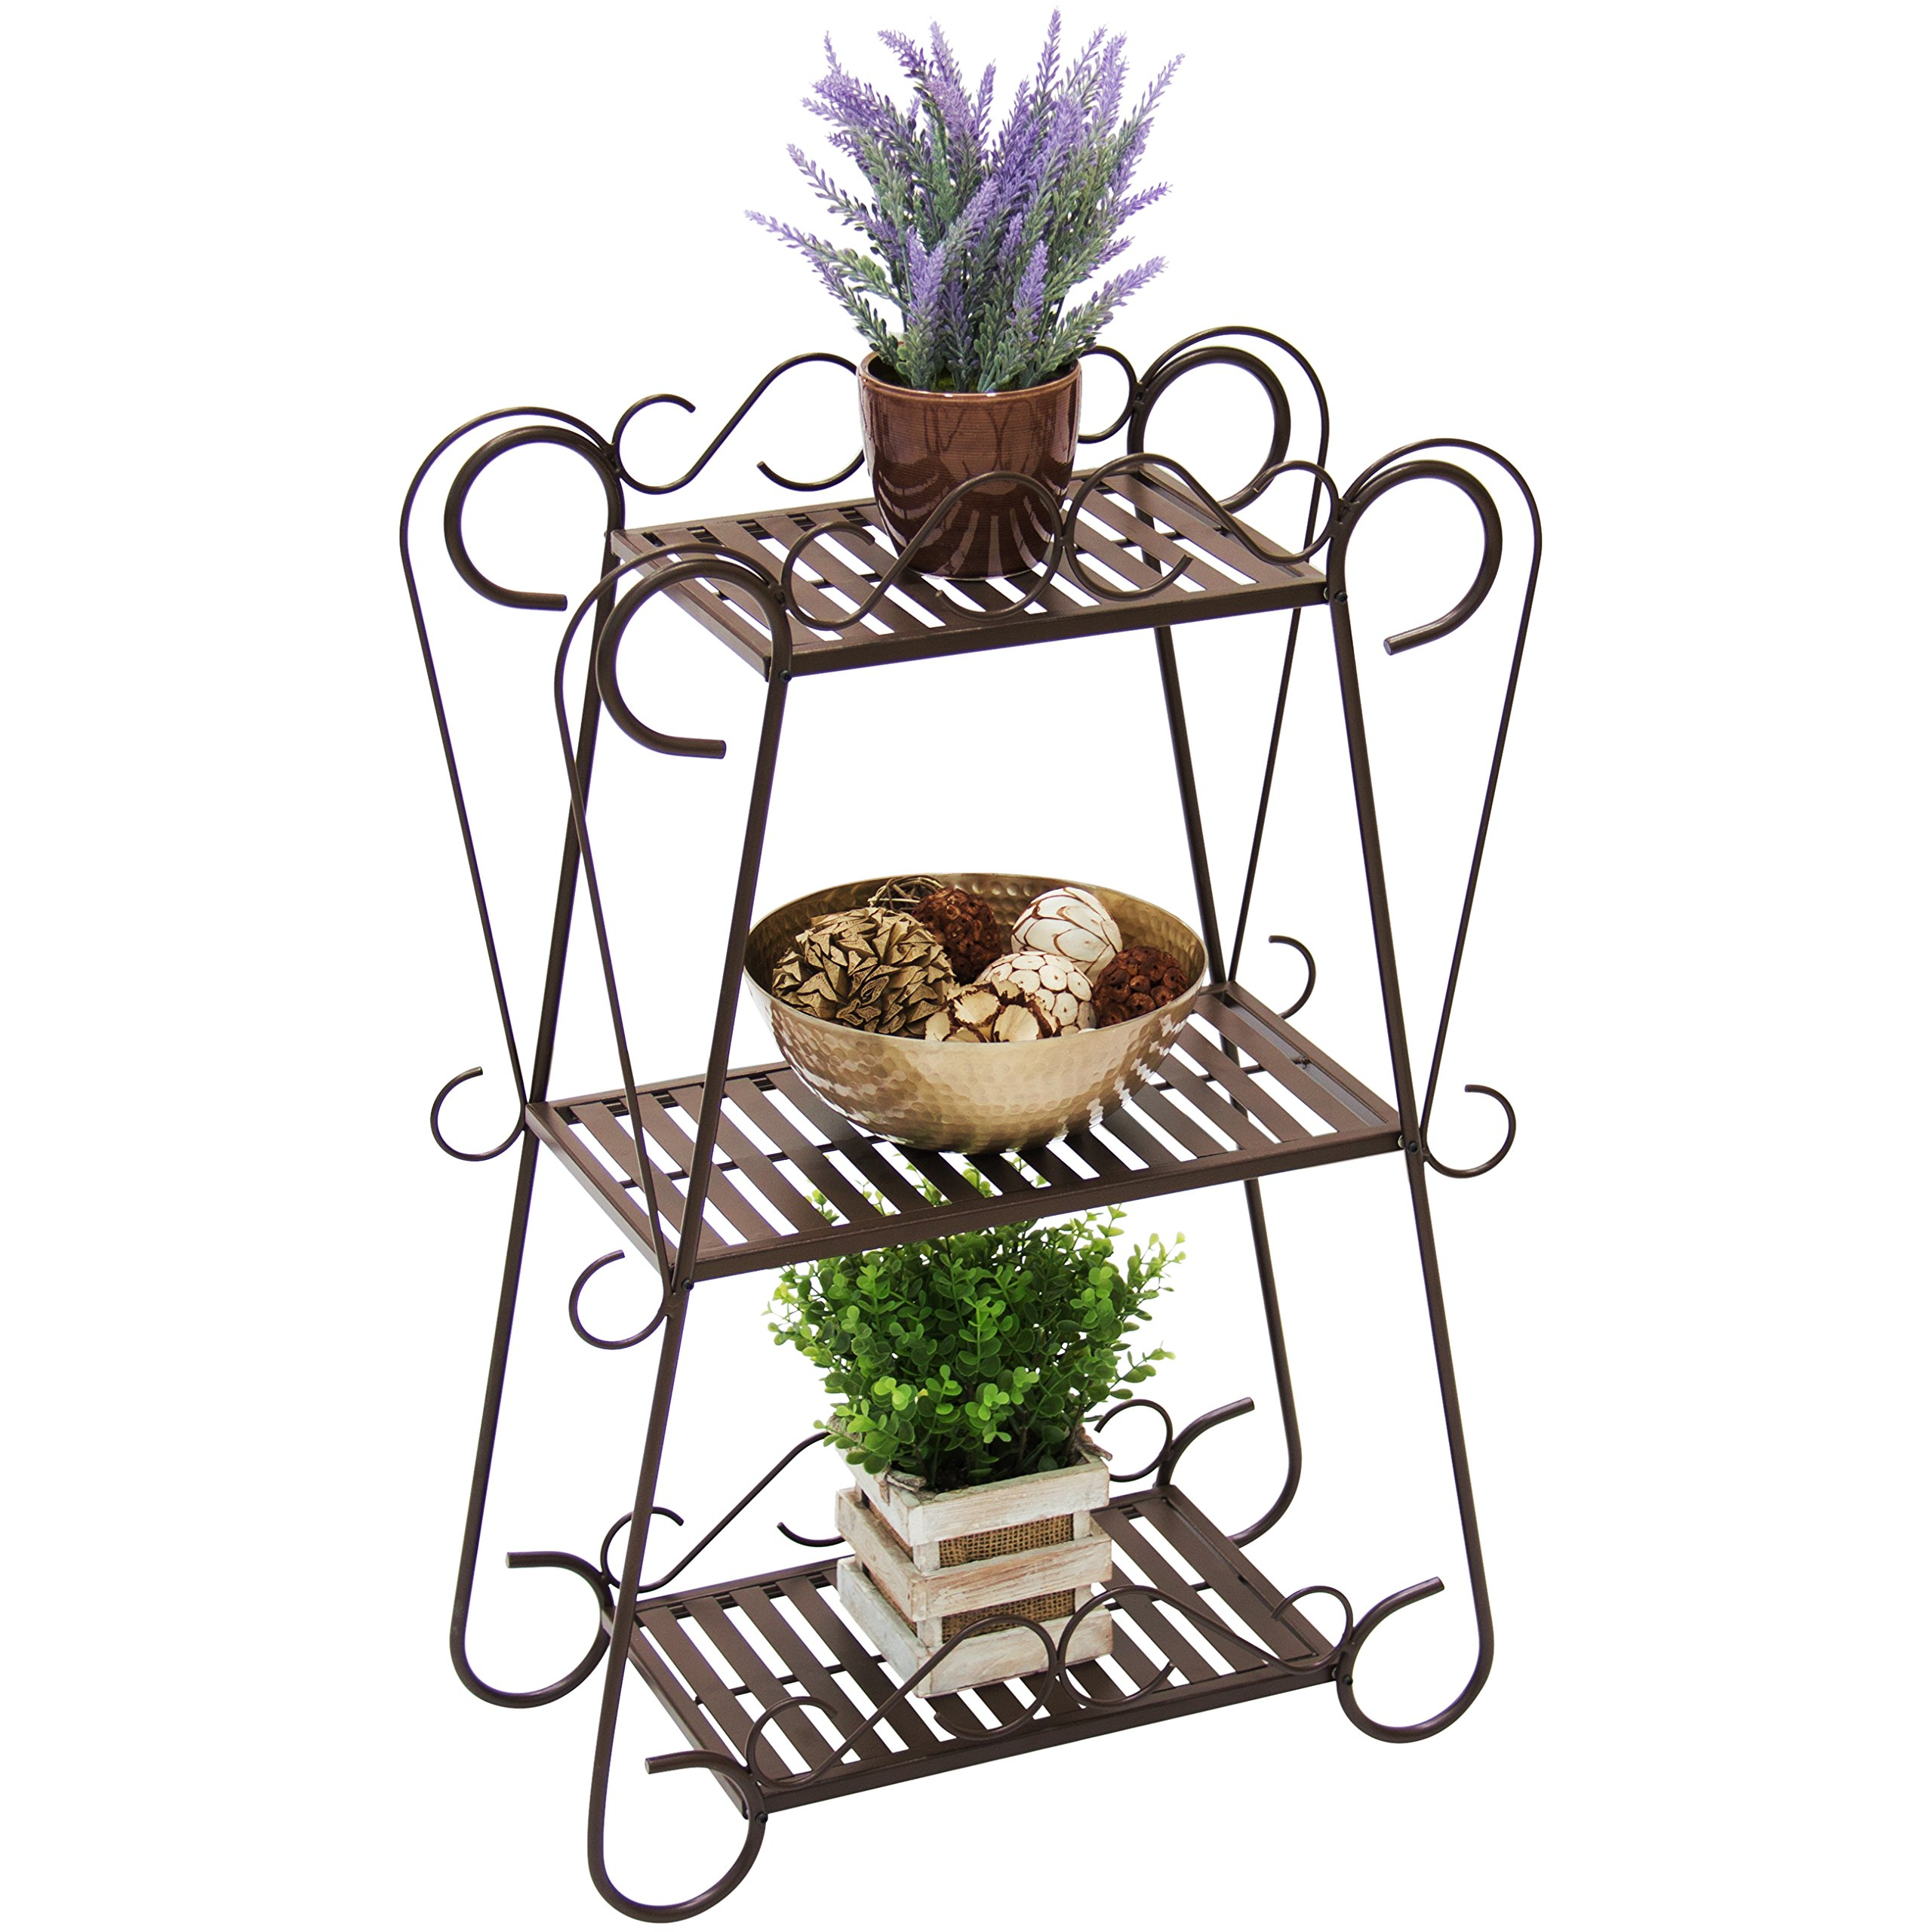 Best Choice Products 3-Shelf Multifunctional Plant Stand Display Rack - Bronze by Best Choice Products